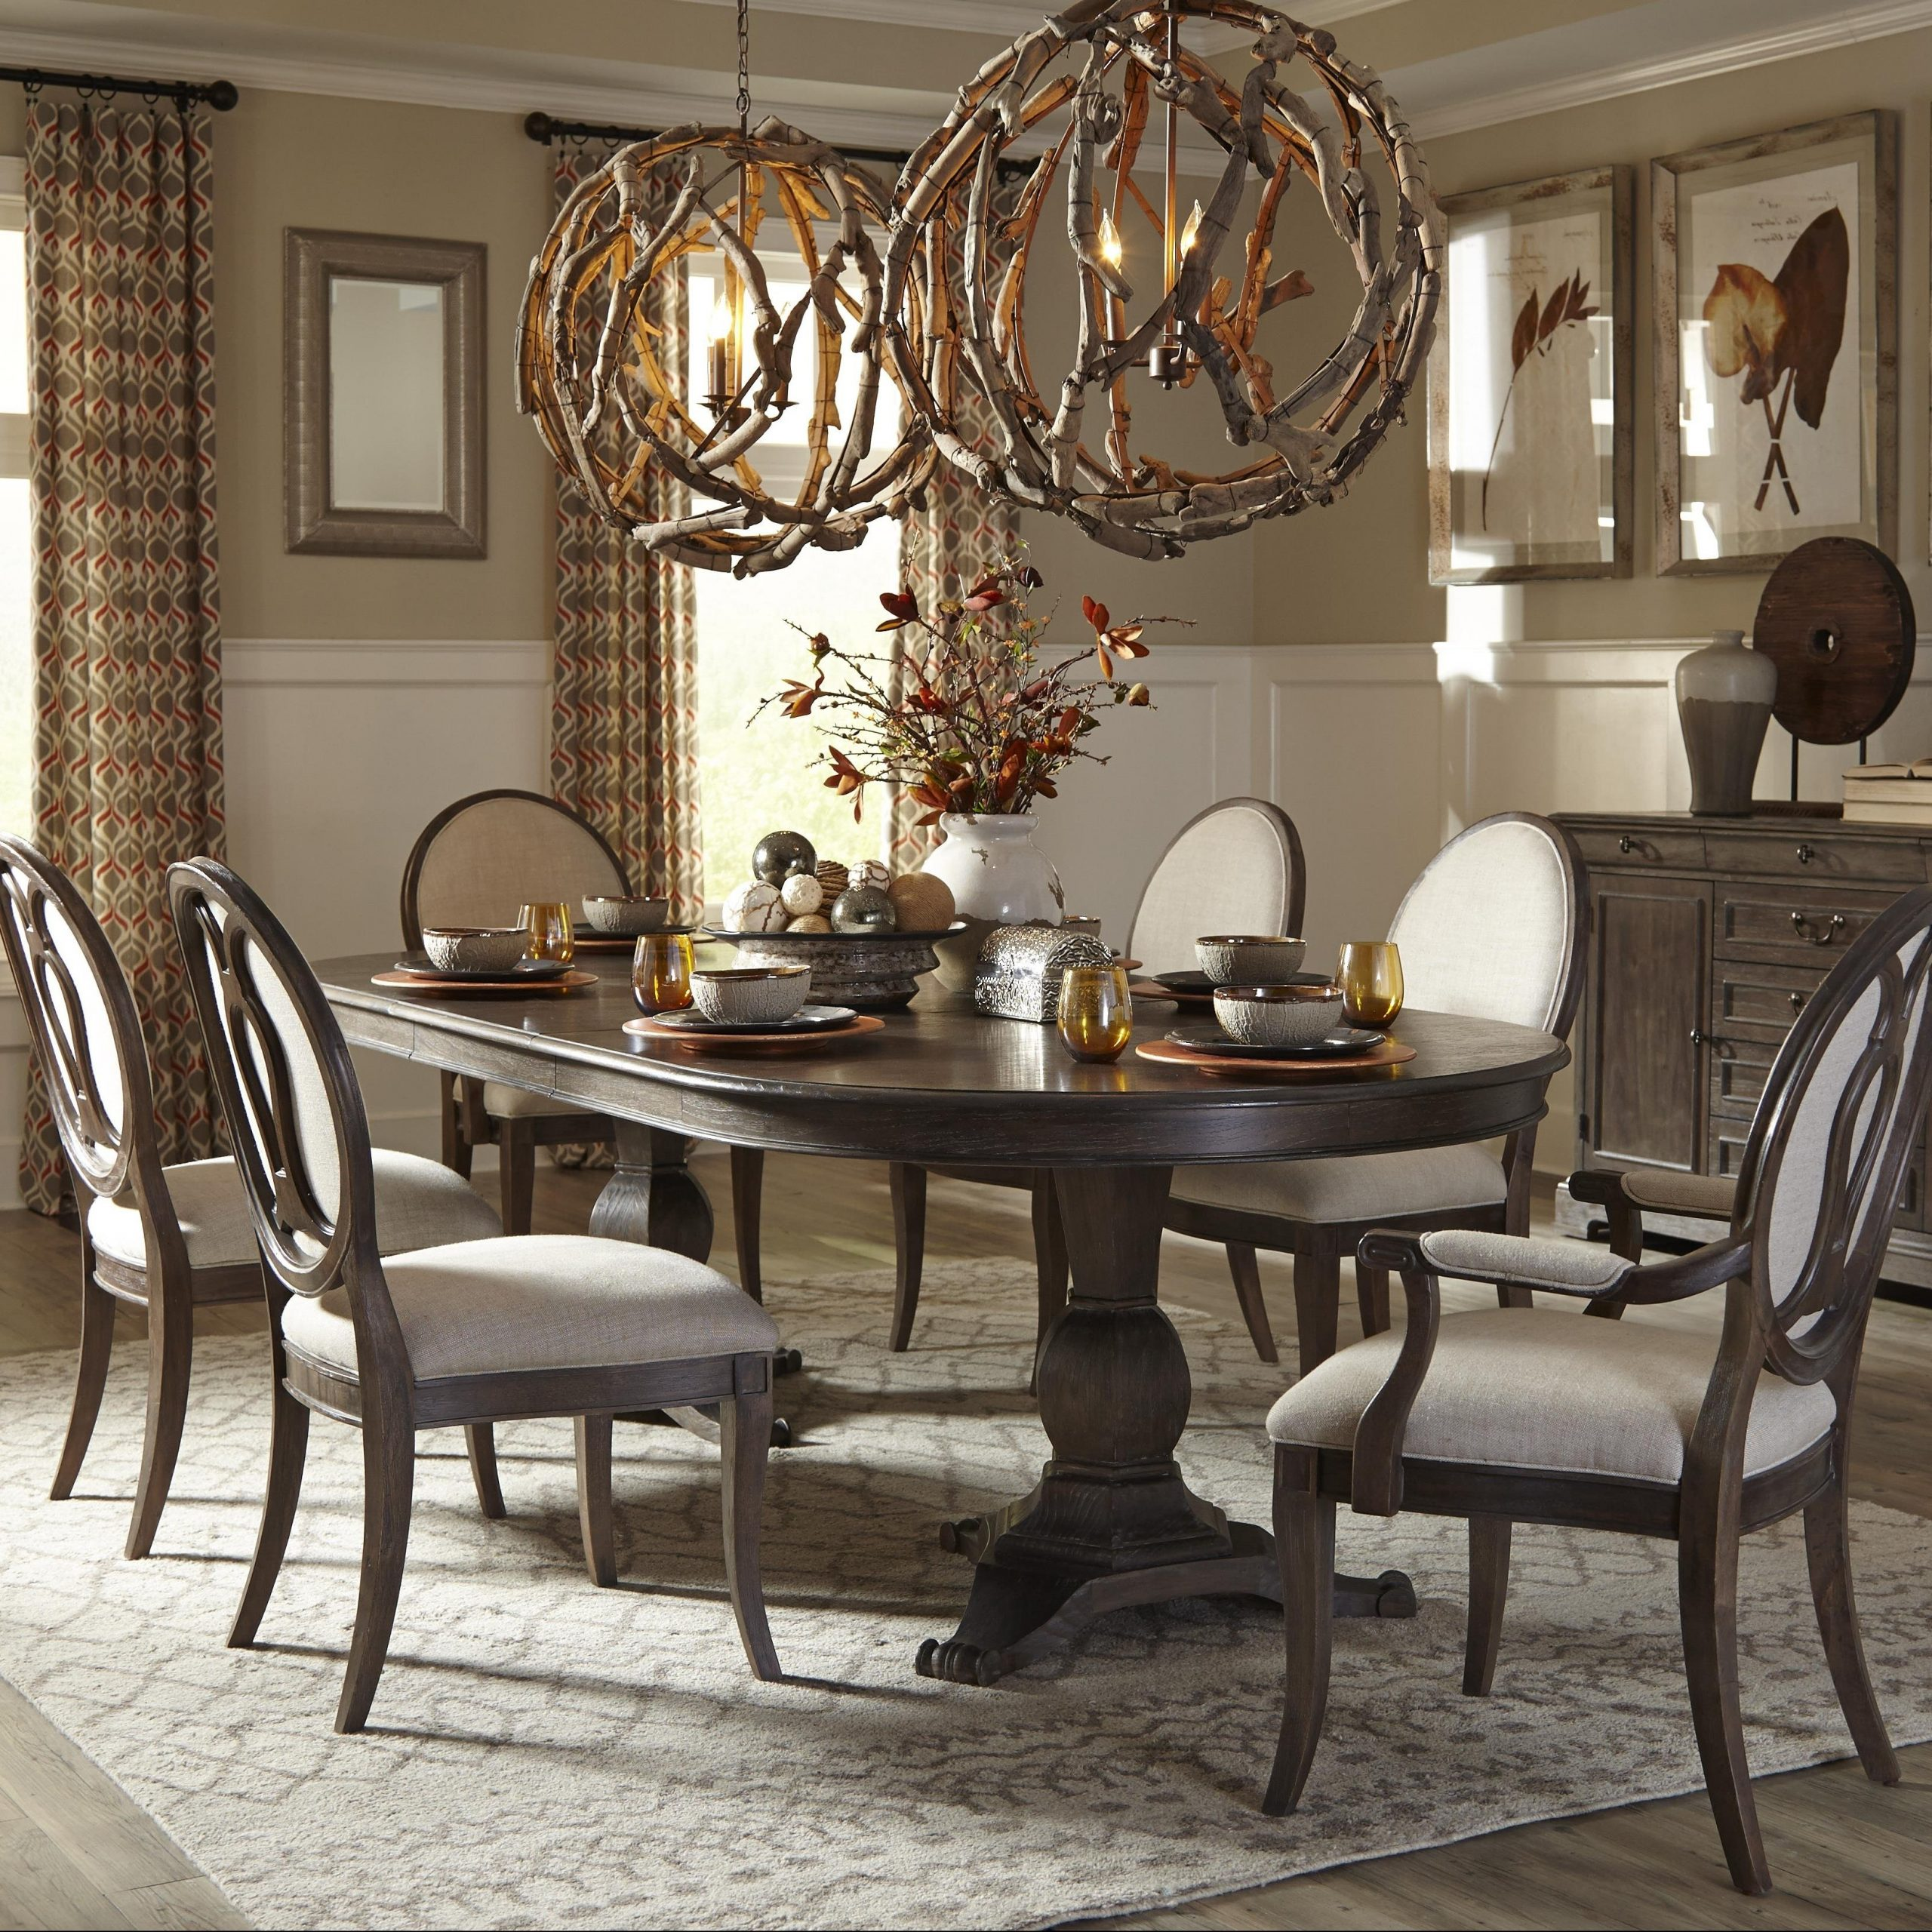 2019 50+ Double Pedestal Dining Table You'll Love In 2020 In Transitional Antique Walnut Square Casual Dining Tables (View 1 of 25)